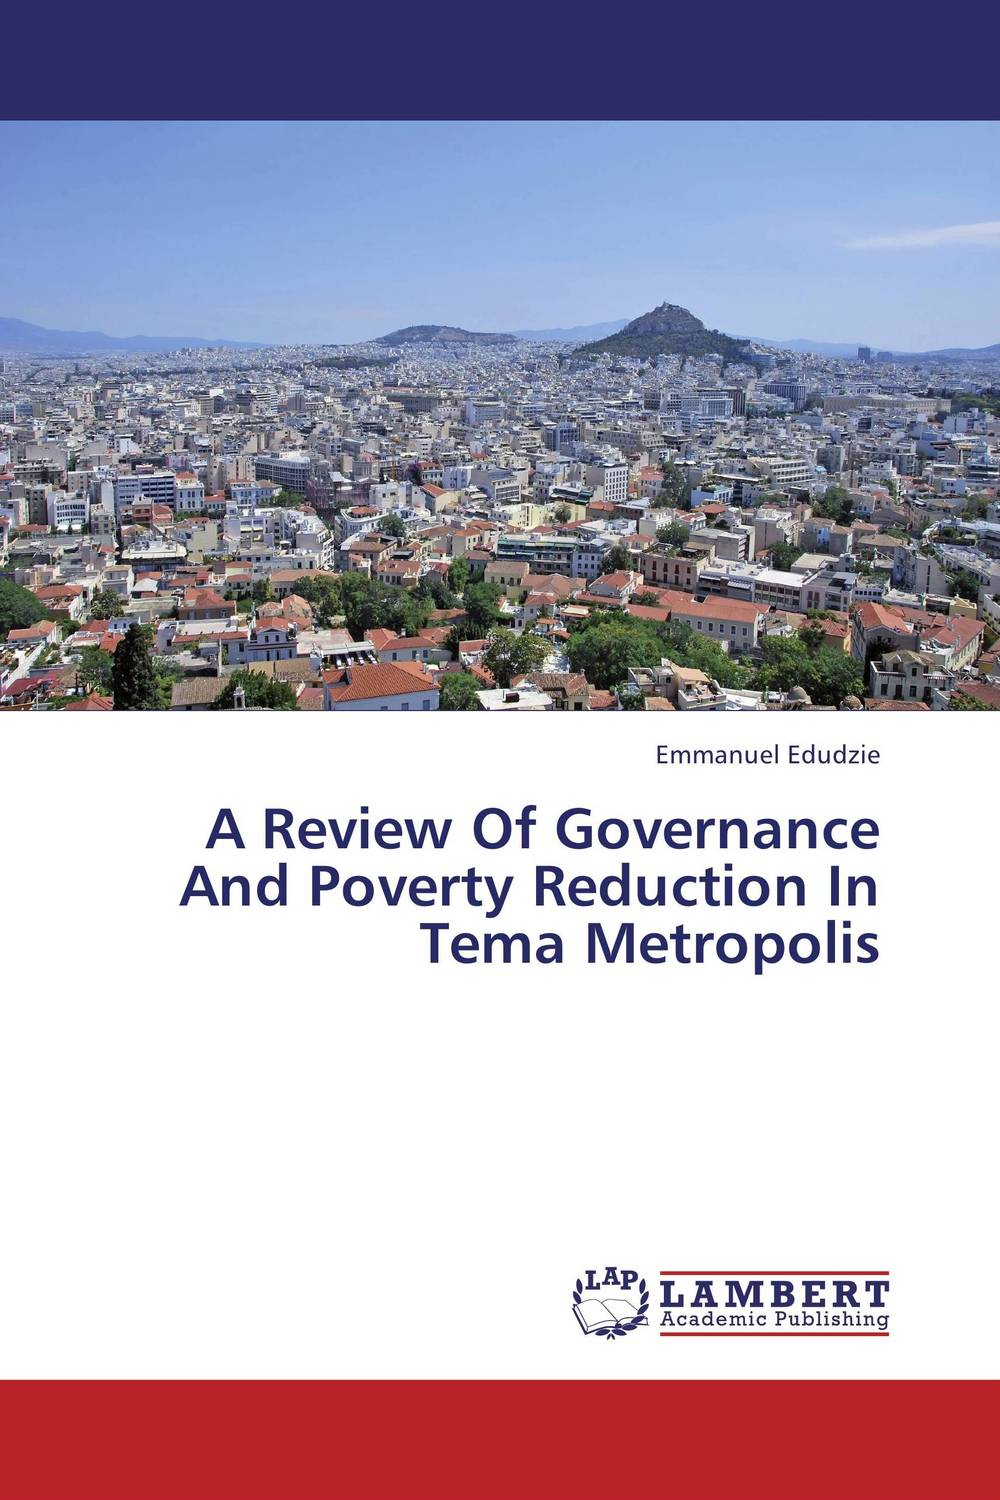 A Review Of Governance And Poverty Reduction In Tema Metropolis